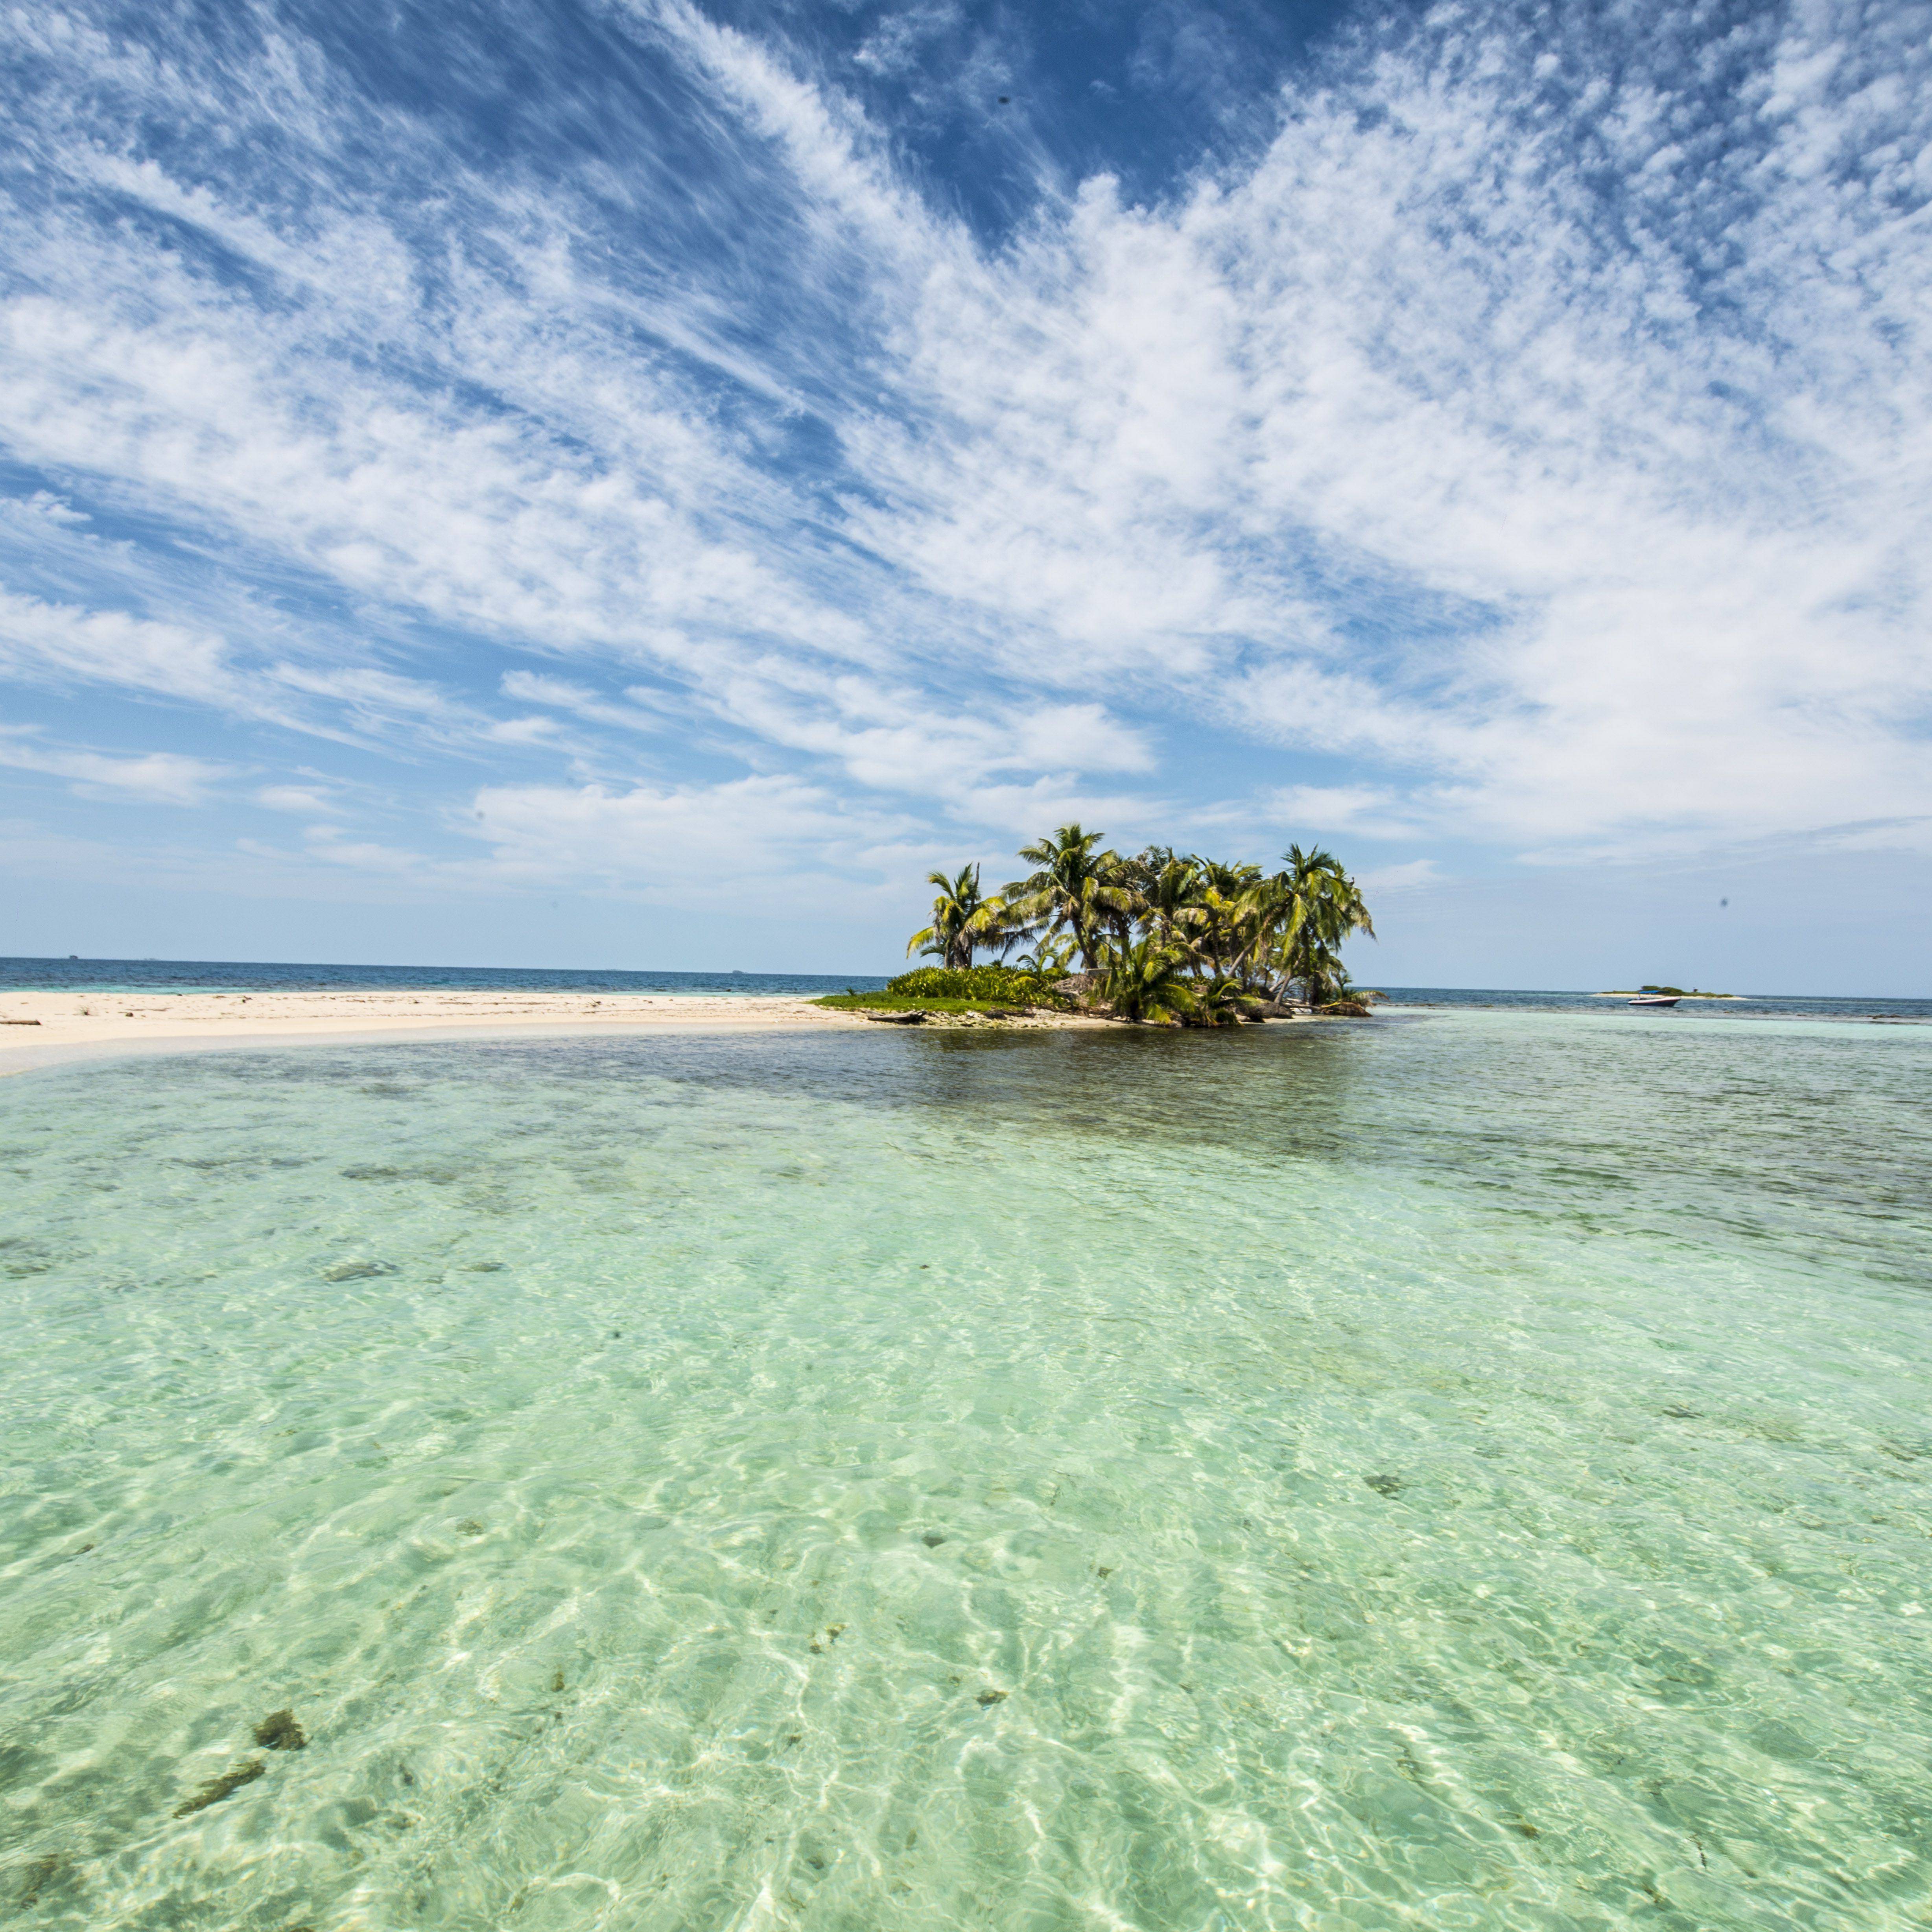 Belize Beaches: Belize News, Articles, Stories & Trends For Today